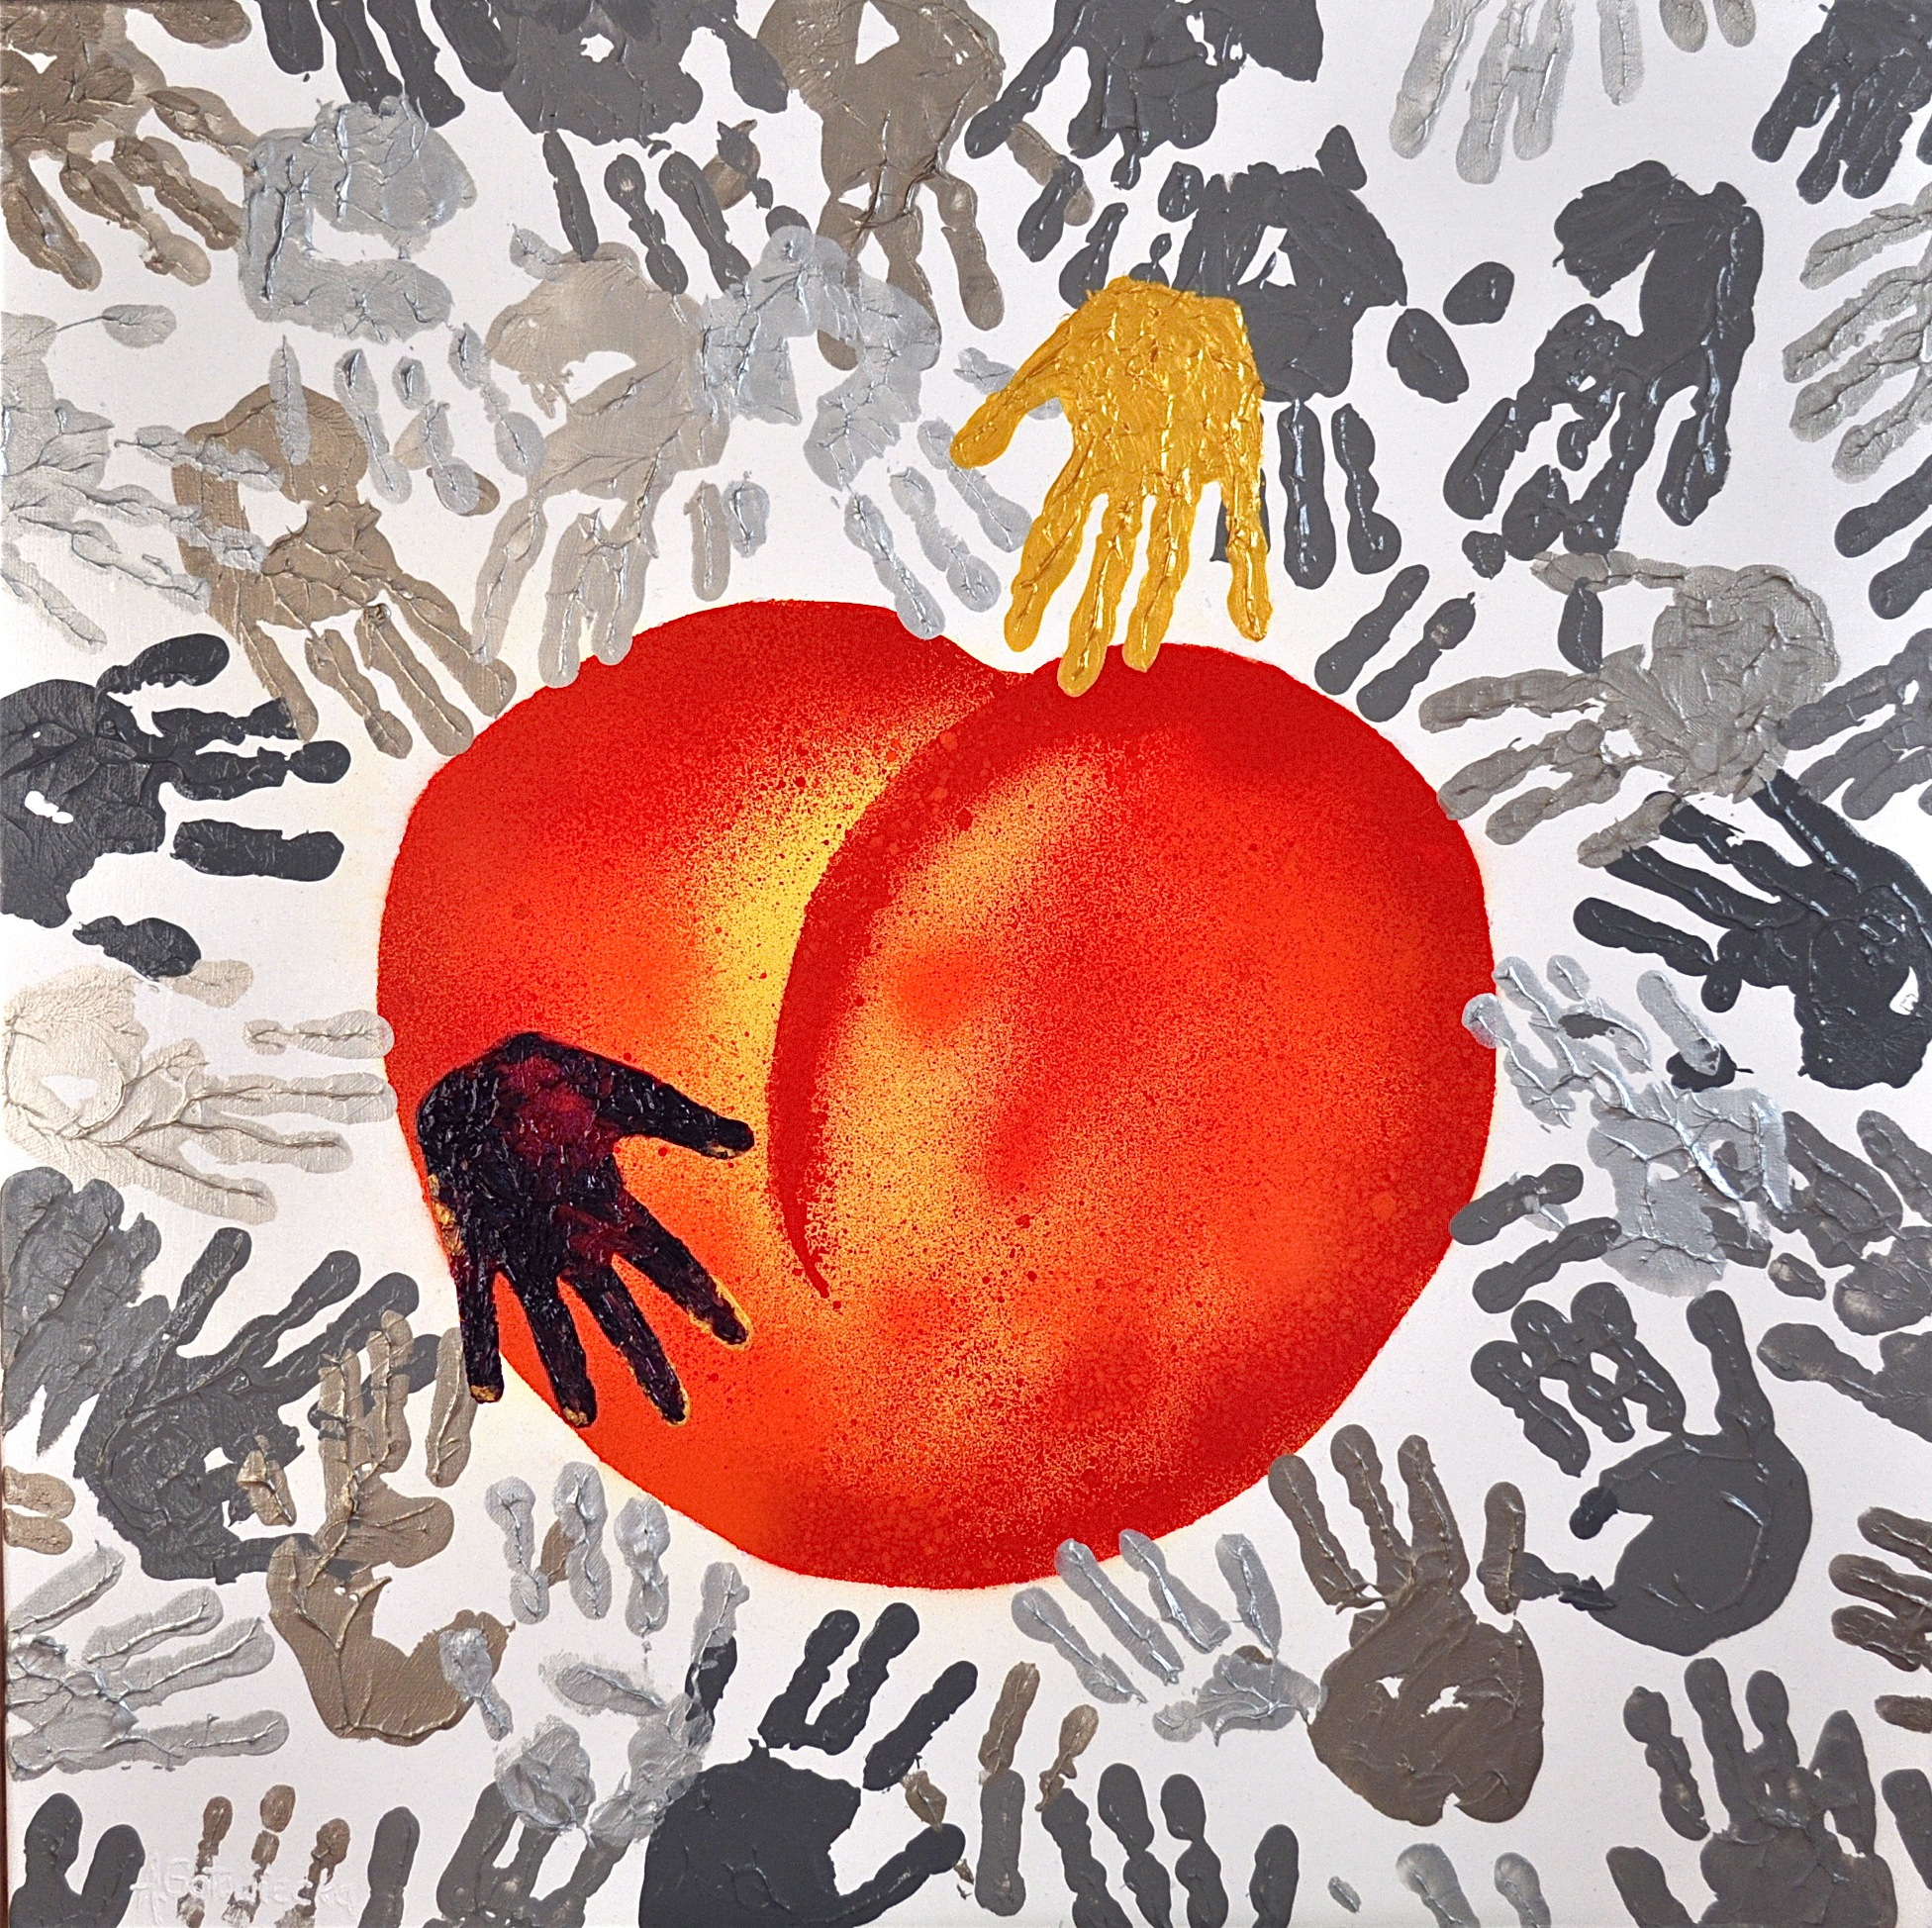 LIFE IS A PEACH  80x80cm-2014.JPG